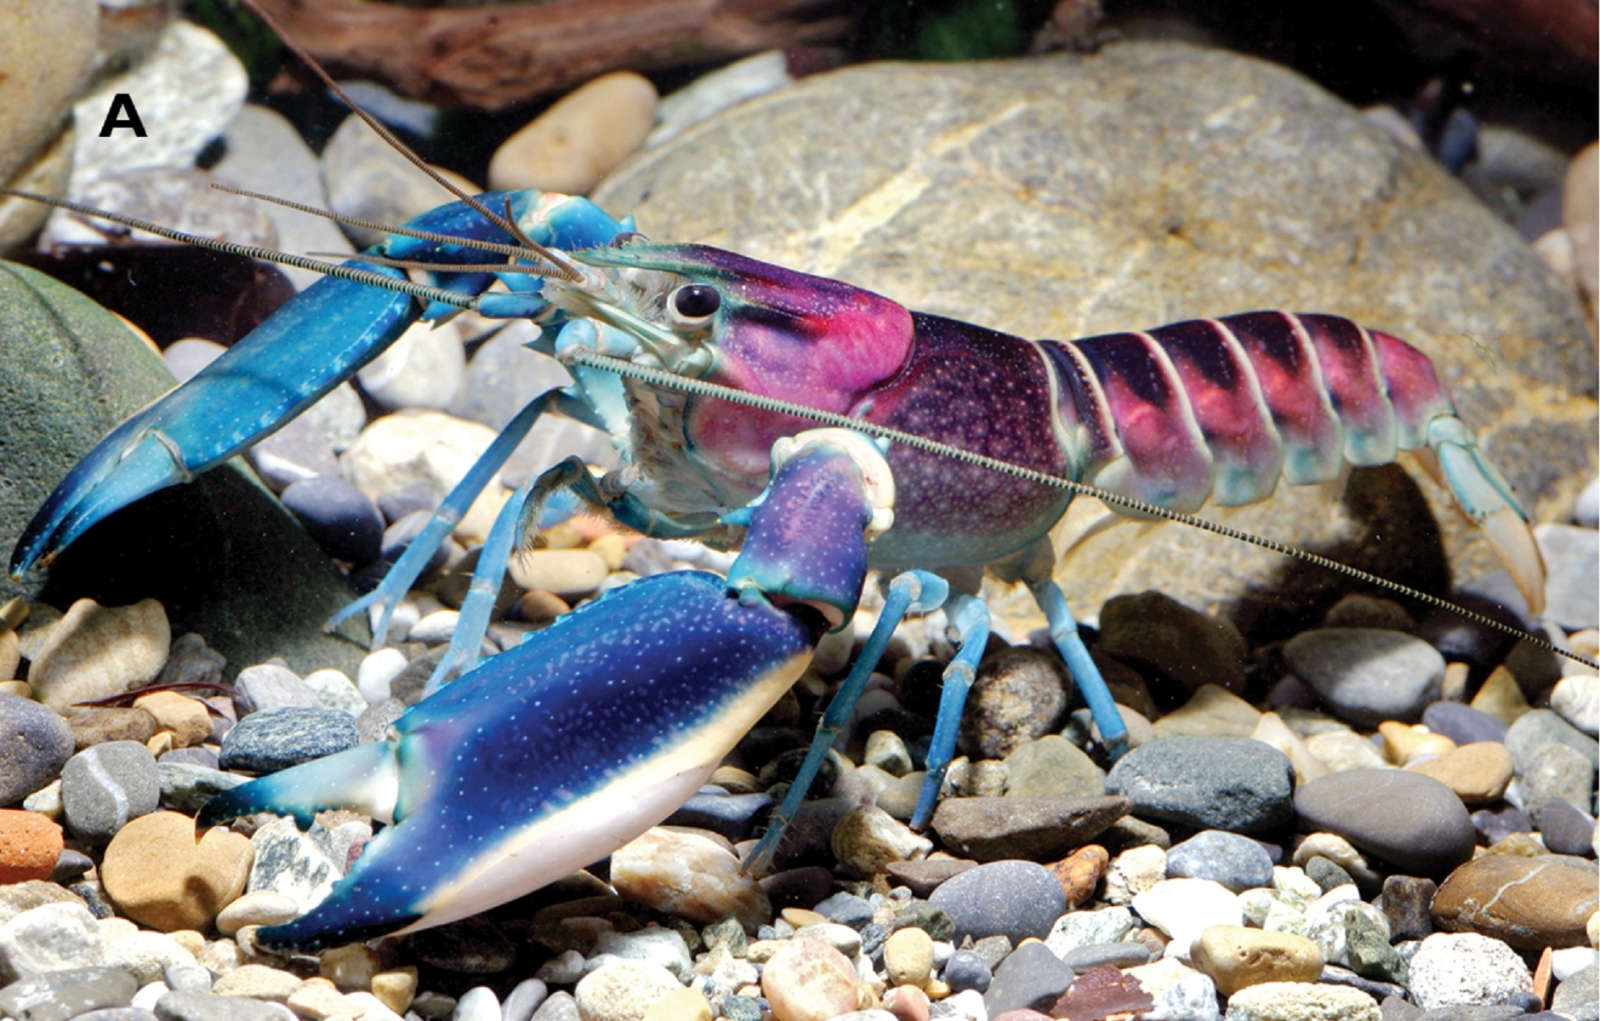 Weird and wonderful colourful crayfish species discover…